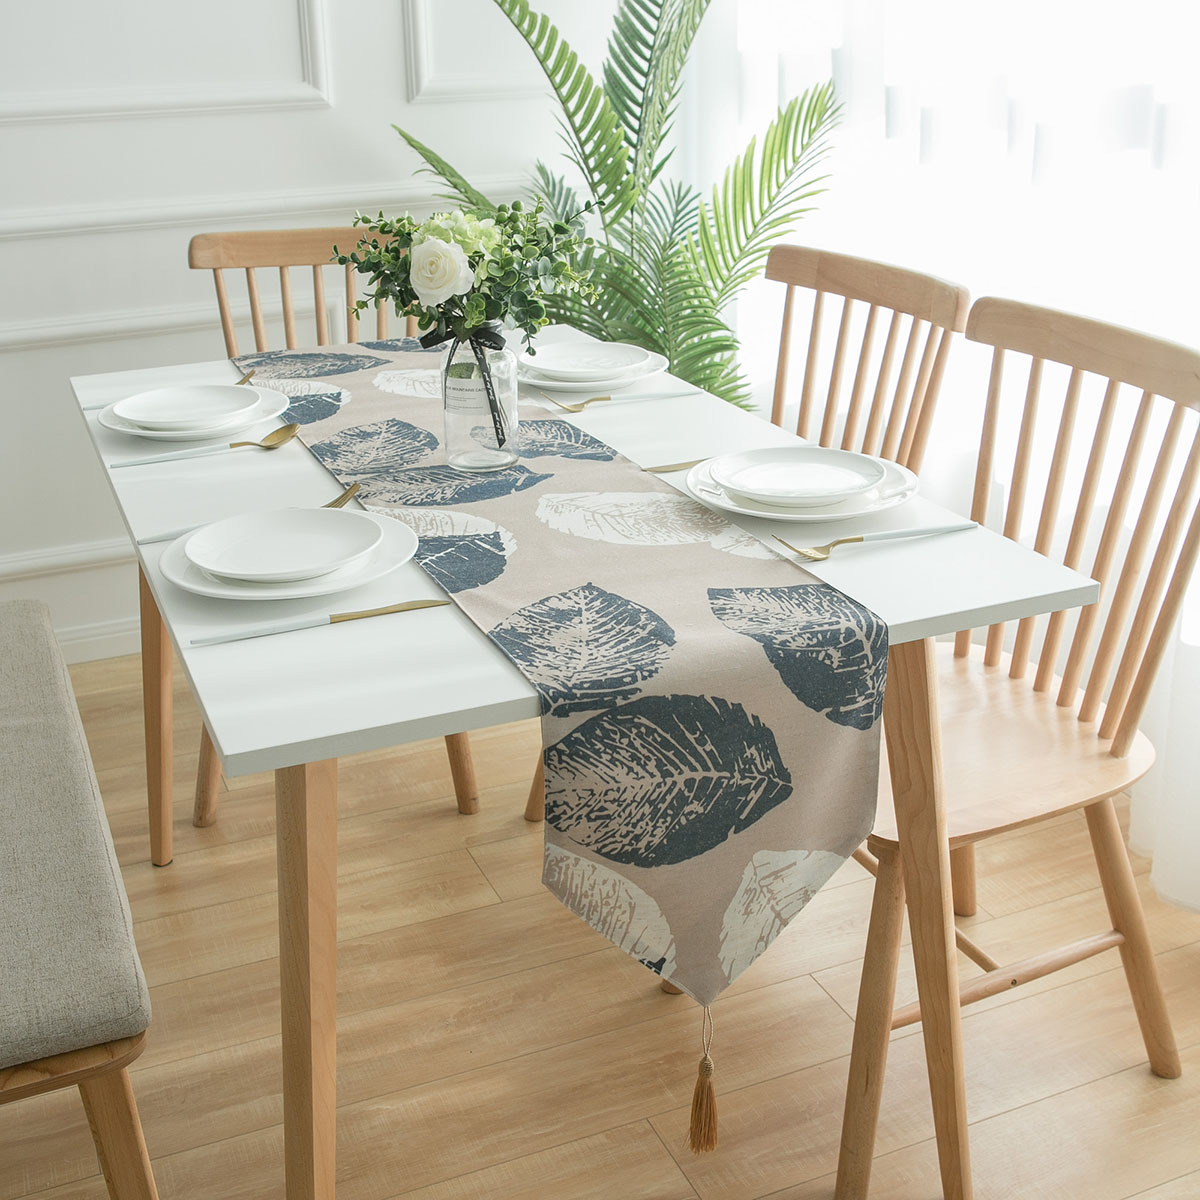 Bohemian Leaf Pattern Table Runner Modern Rural Style Home Decor Family Table Decoration Accessories Leave Place Mat Table Mat in Table Runners from Home Garden